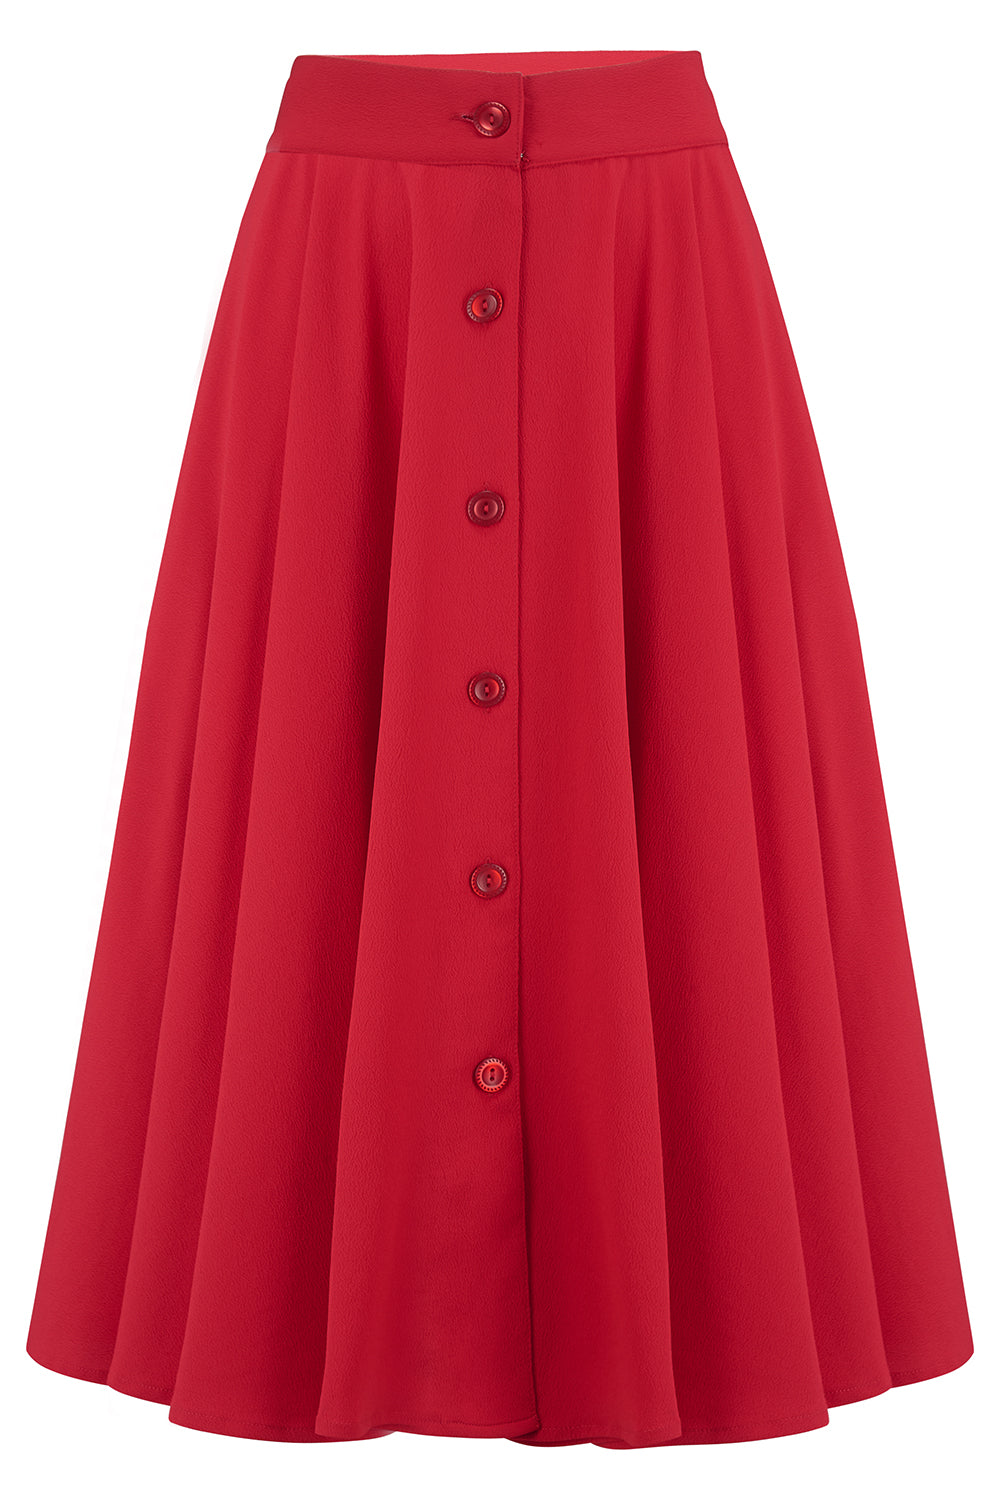 "Rock n Romance ""Beverly"" Button Front Full Circle Skirt with Pockets in Solid Red, Authentic 1950s Vintage Style - RocknRomance Clothing"